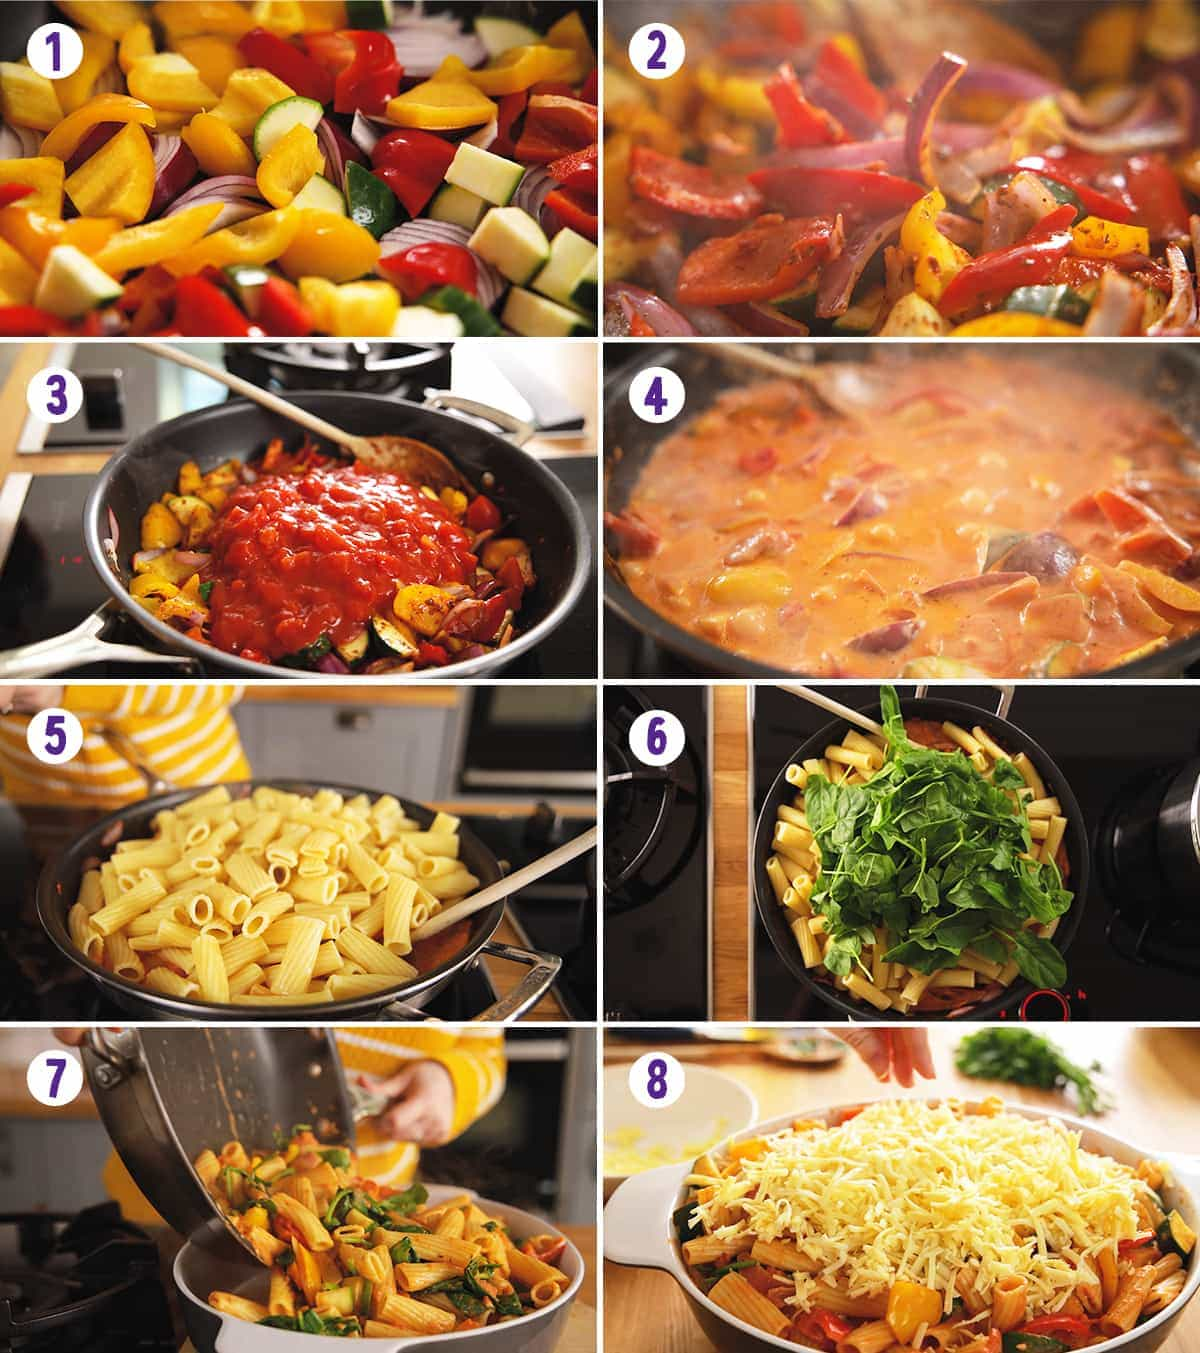 8 image collage showing steps for making vegetable pasta bake